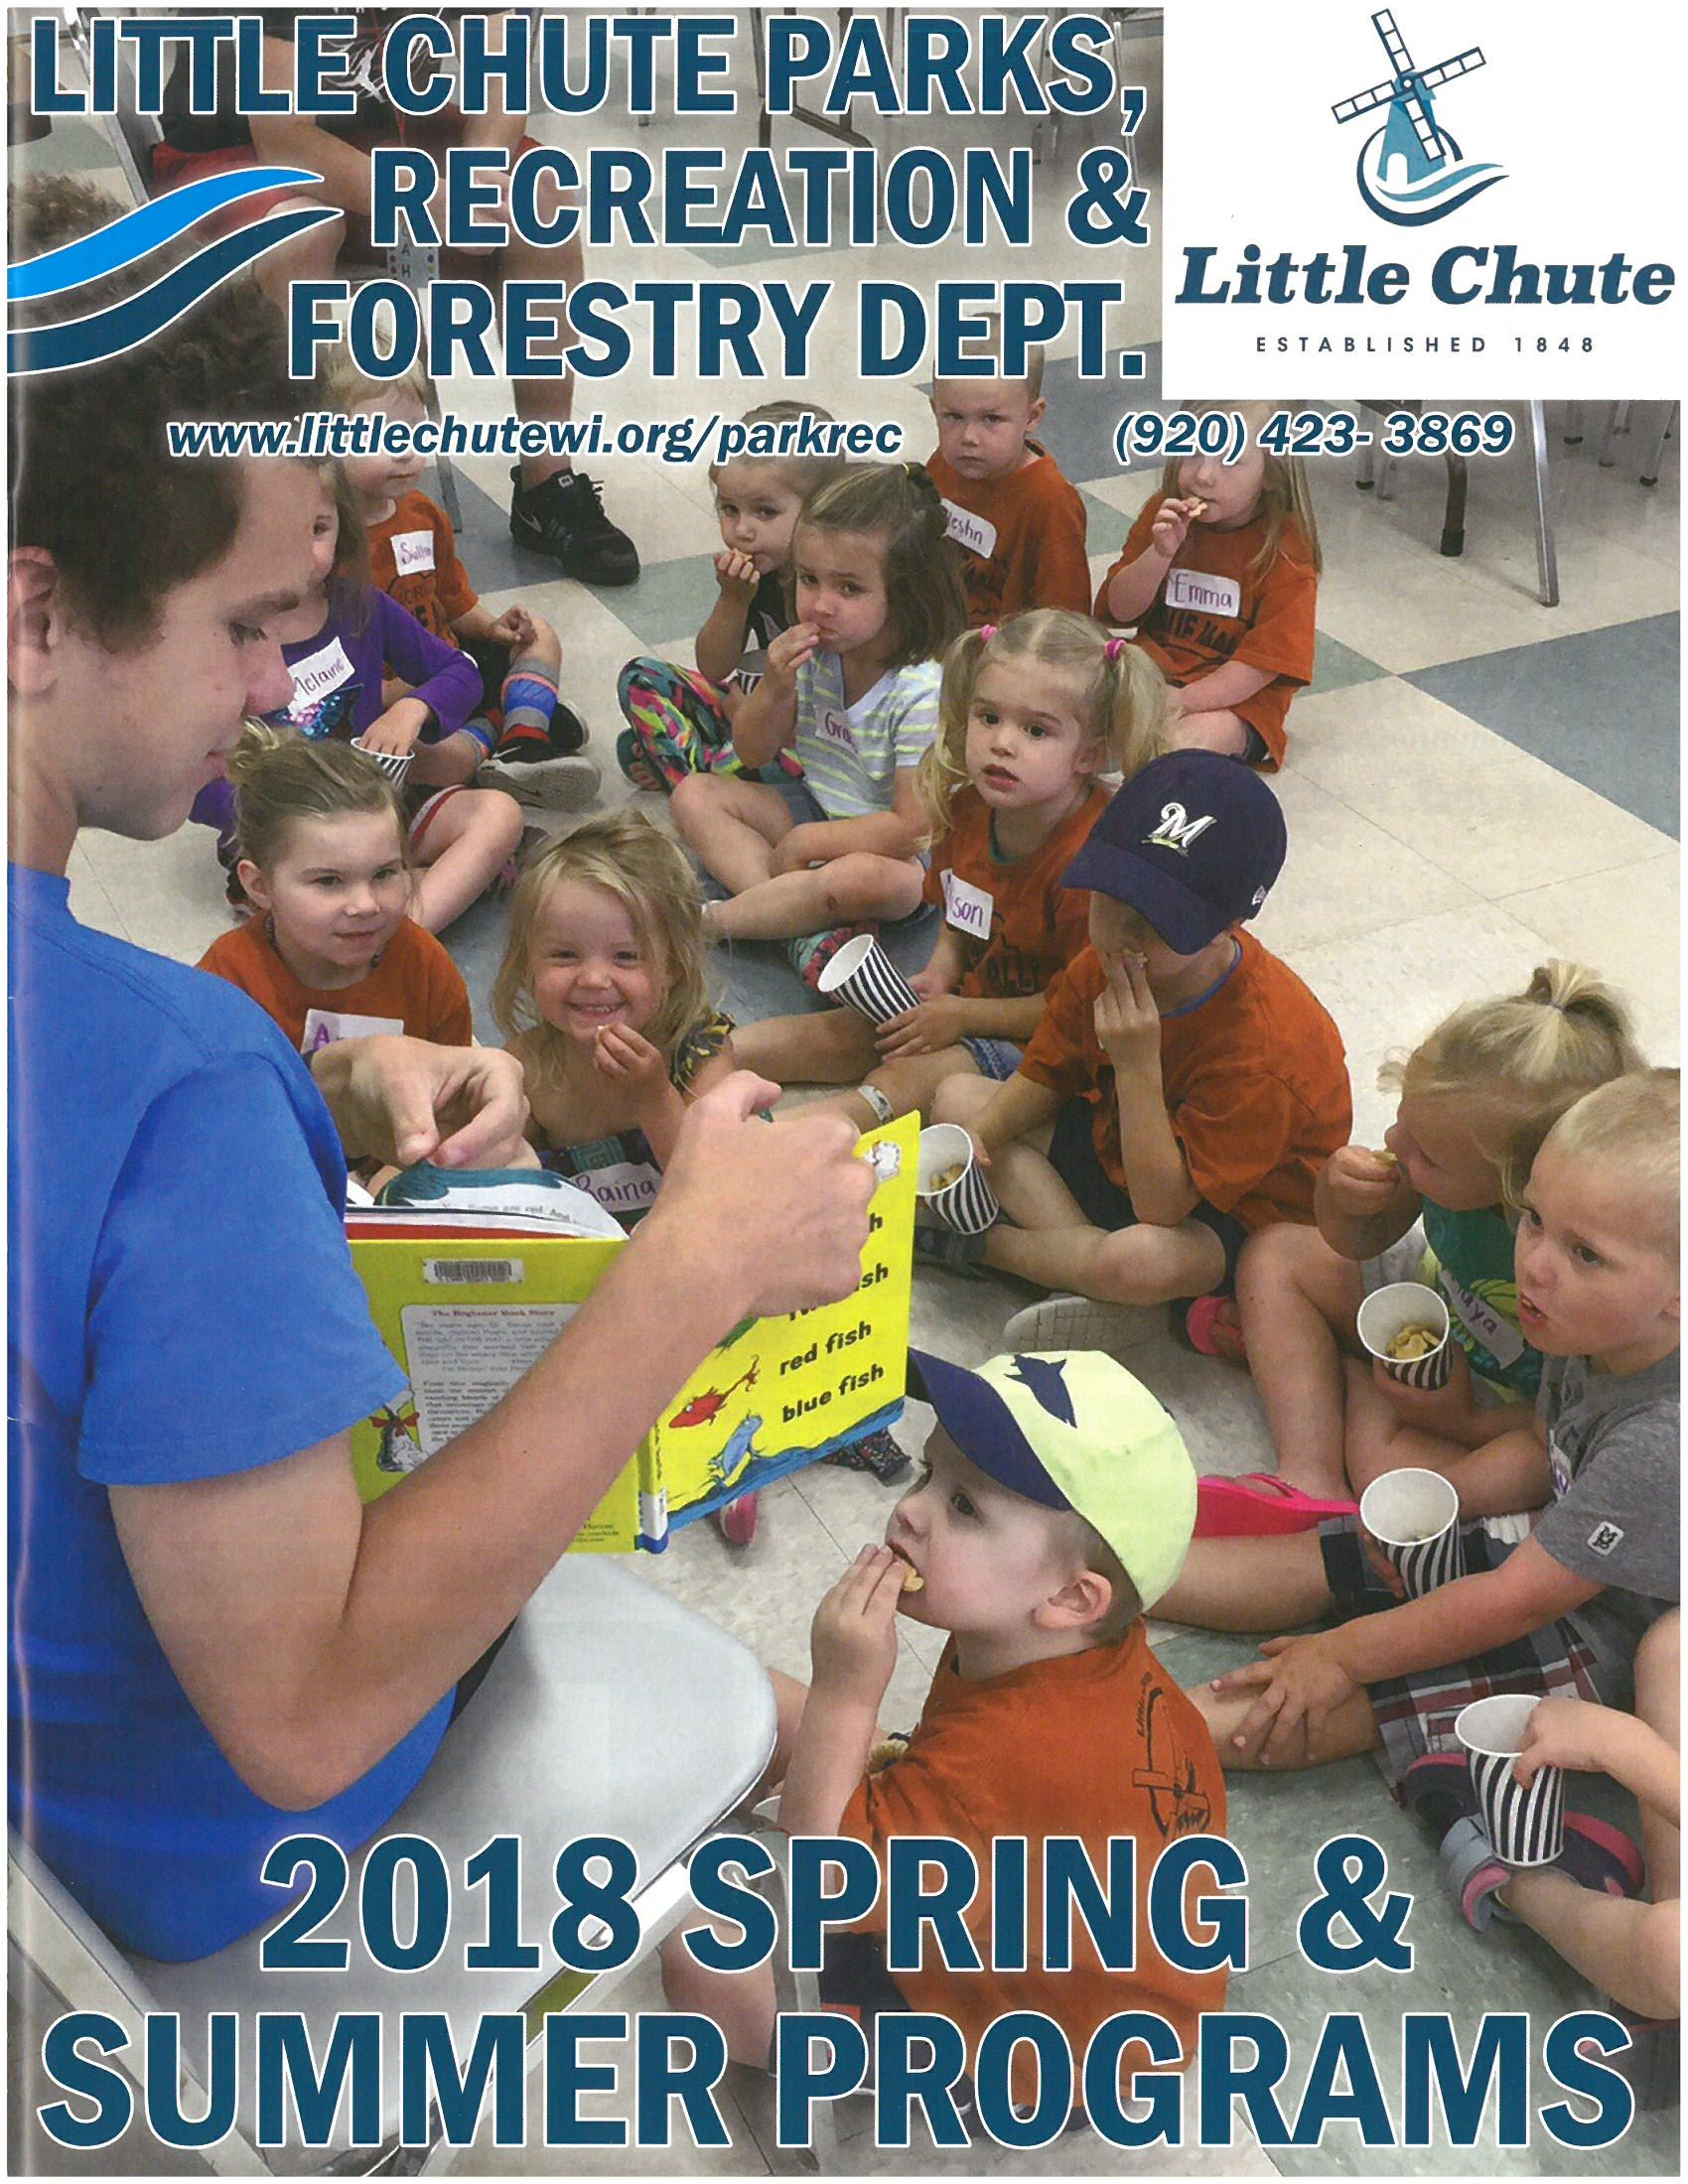 2018 Program Book Cover